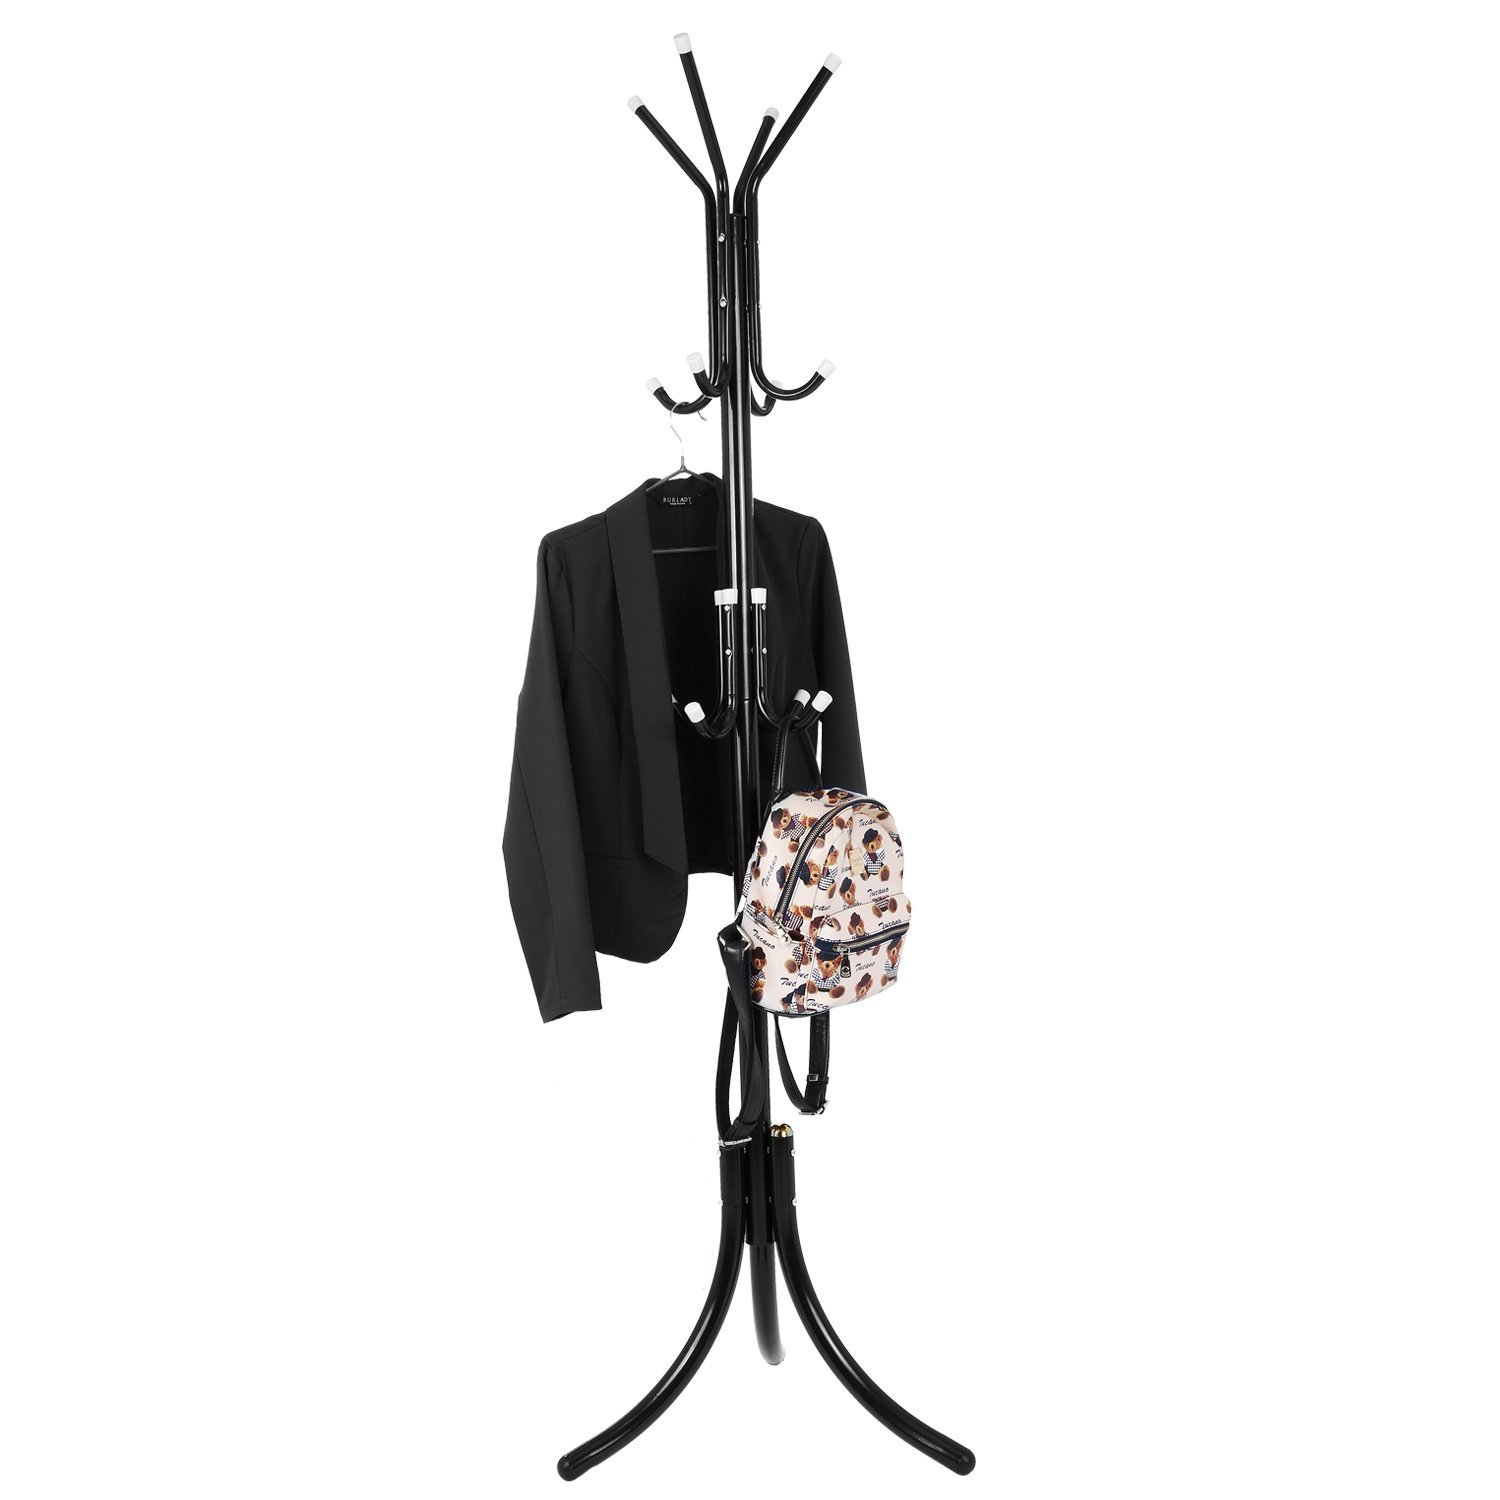 Benlet Entryway Free Standing 12-Hook Metal Hall Tree Coat Hat Rack Tree Stand Jacket Purse Umbrella Hanger with Tripod Base for Home Office Small Place(US Stock) (Black)